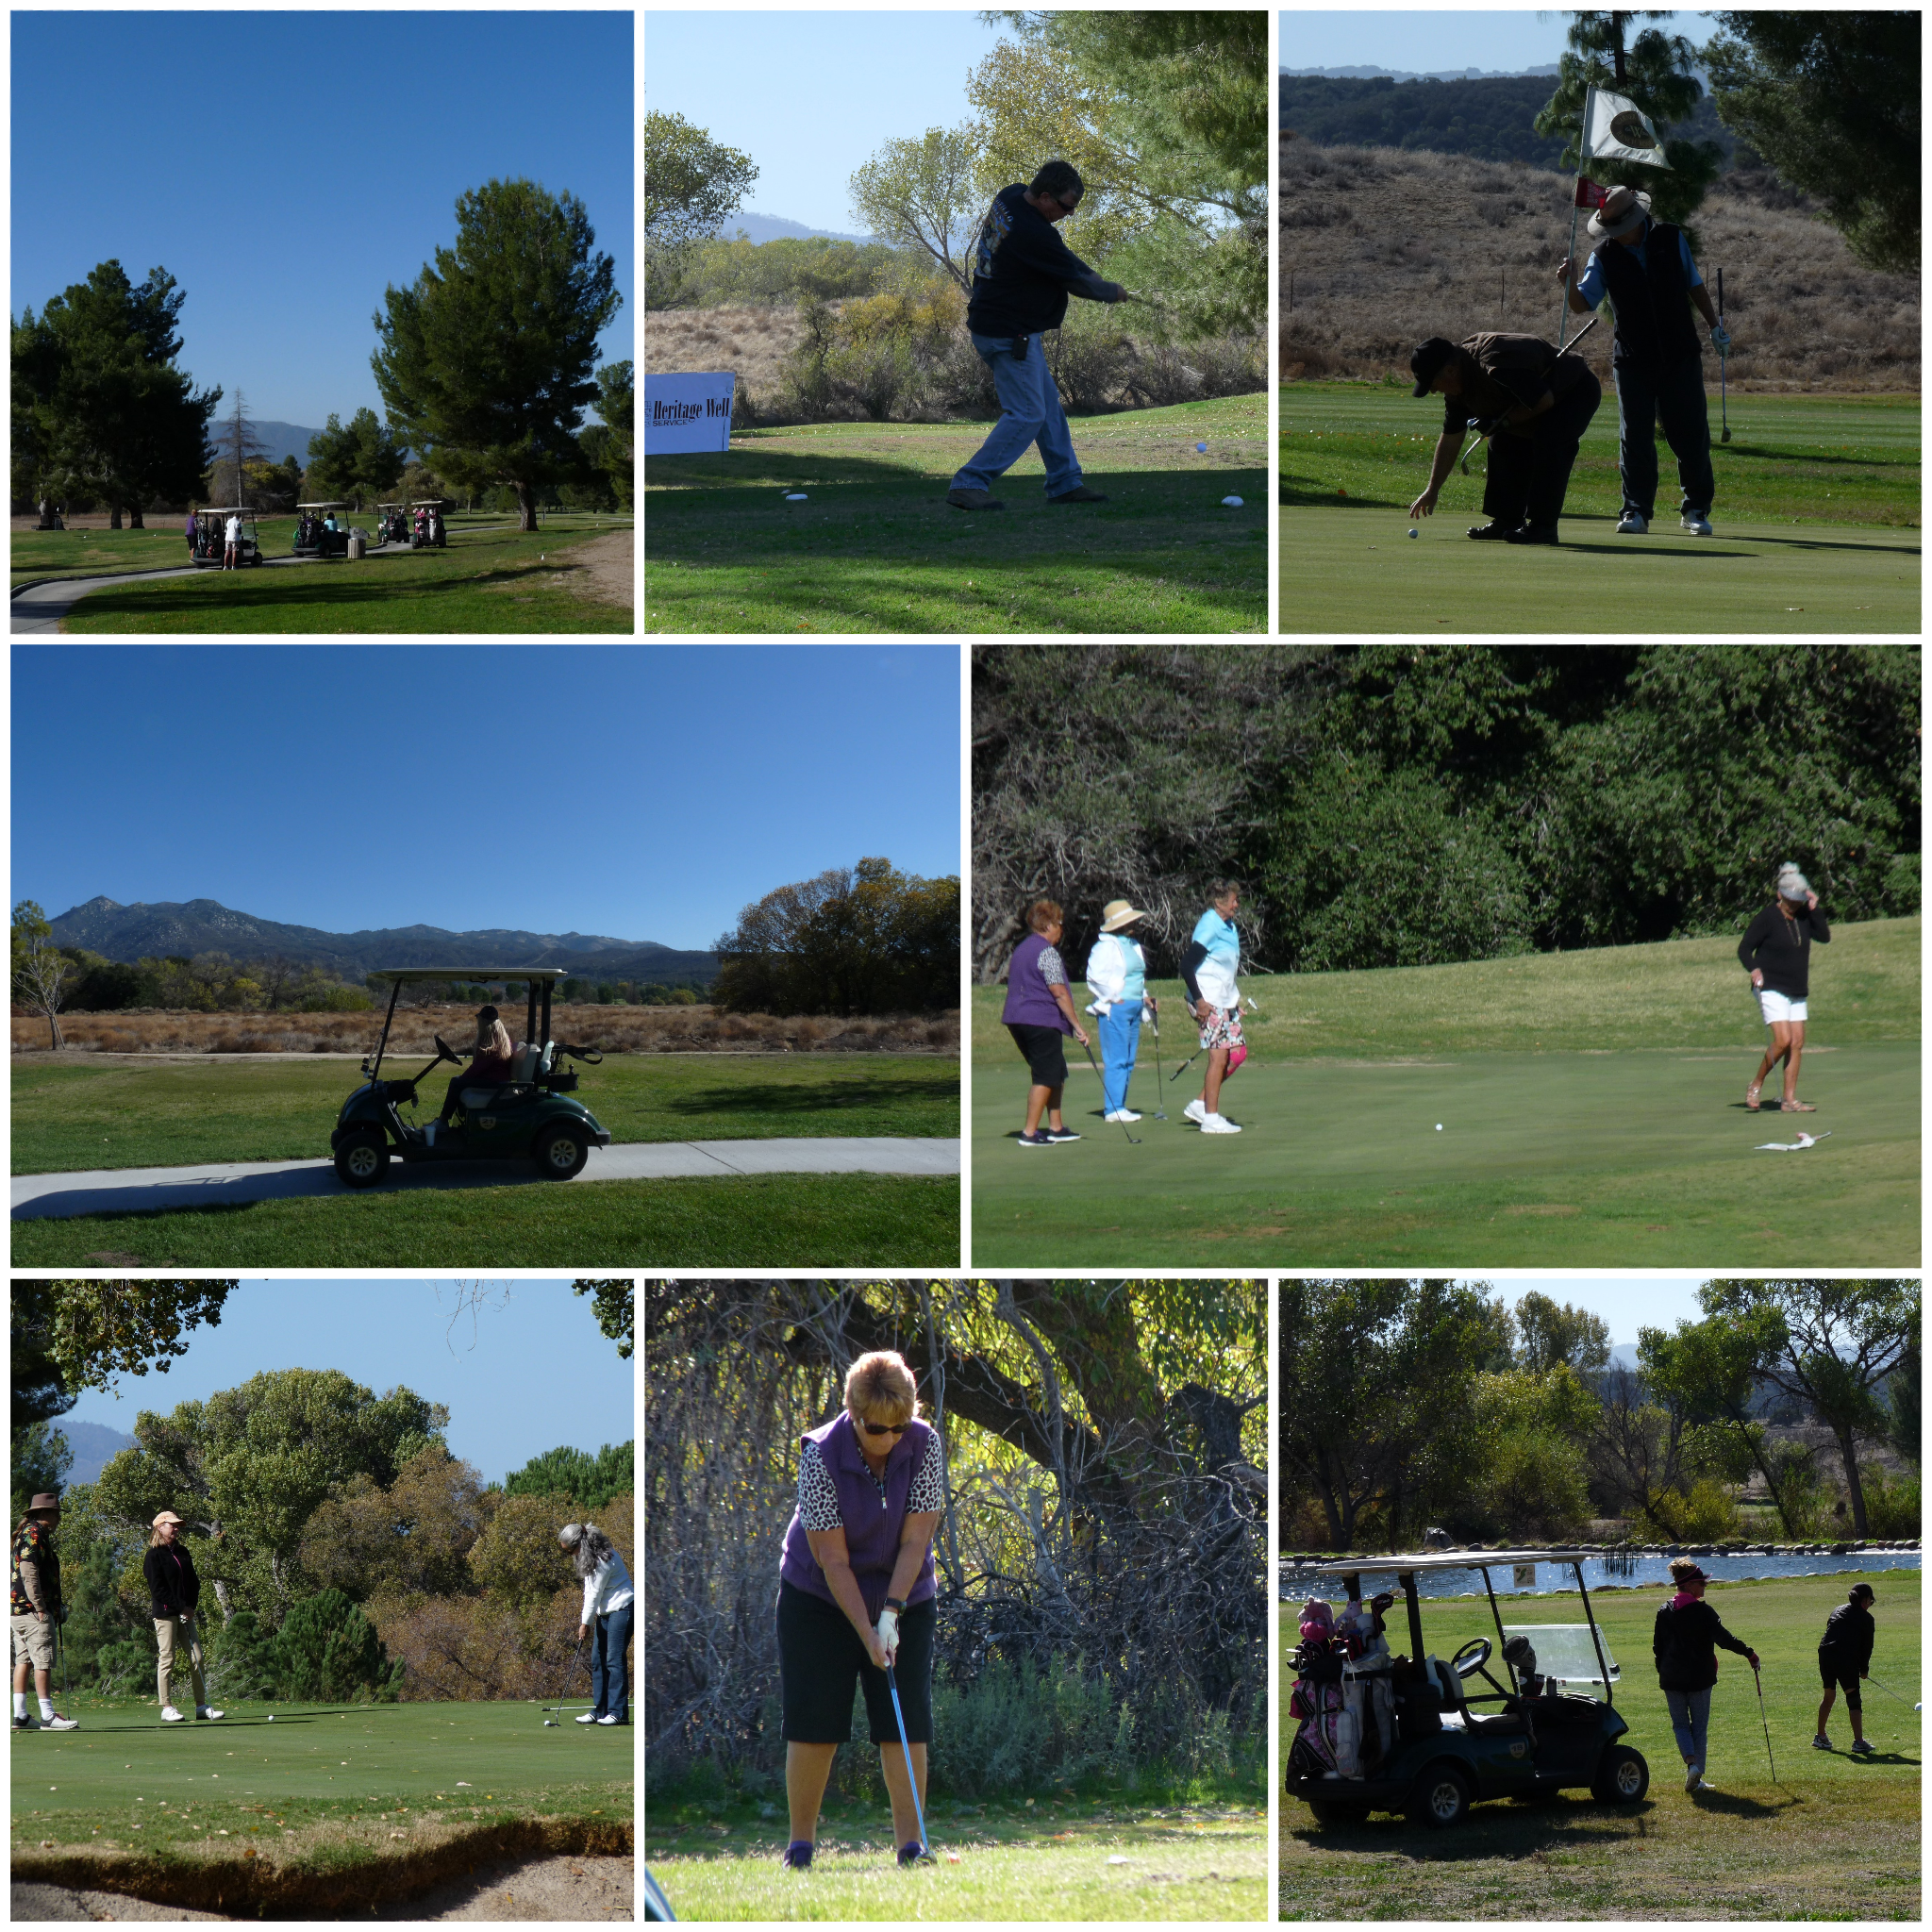 KOYT 1st annual Howl-In-One golf tournament at Warner Springs Resort